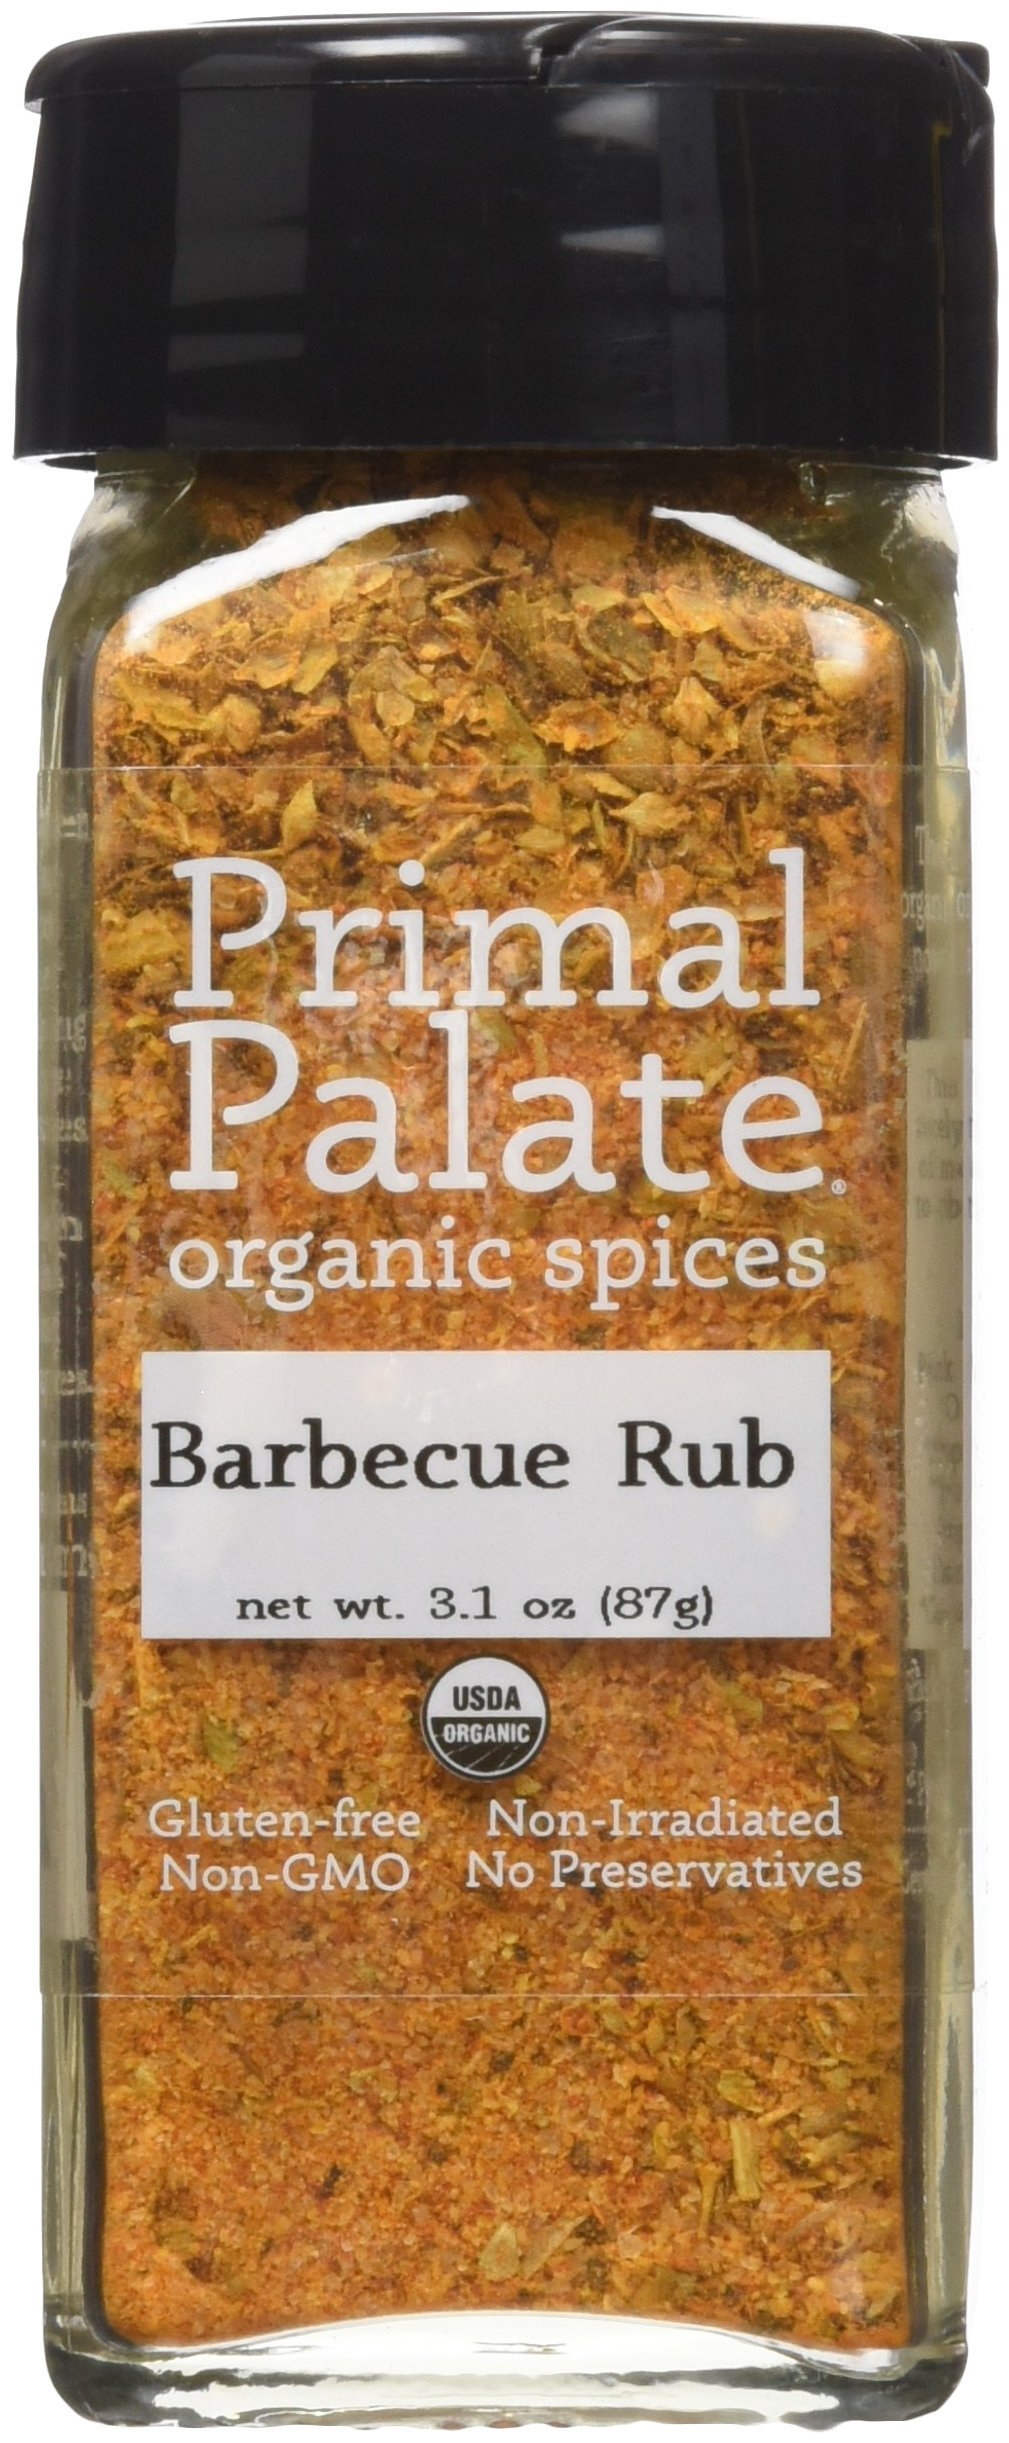 Primal Palate Organic Spices Barbecue Rub, Certified Organic, 3.1 oz Bottle